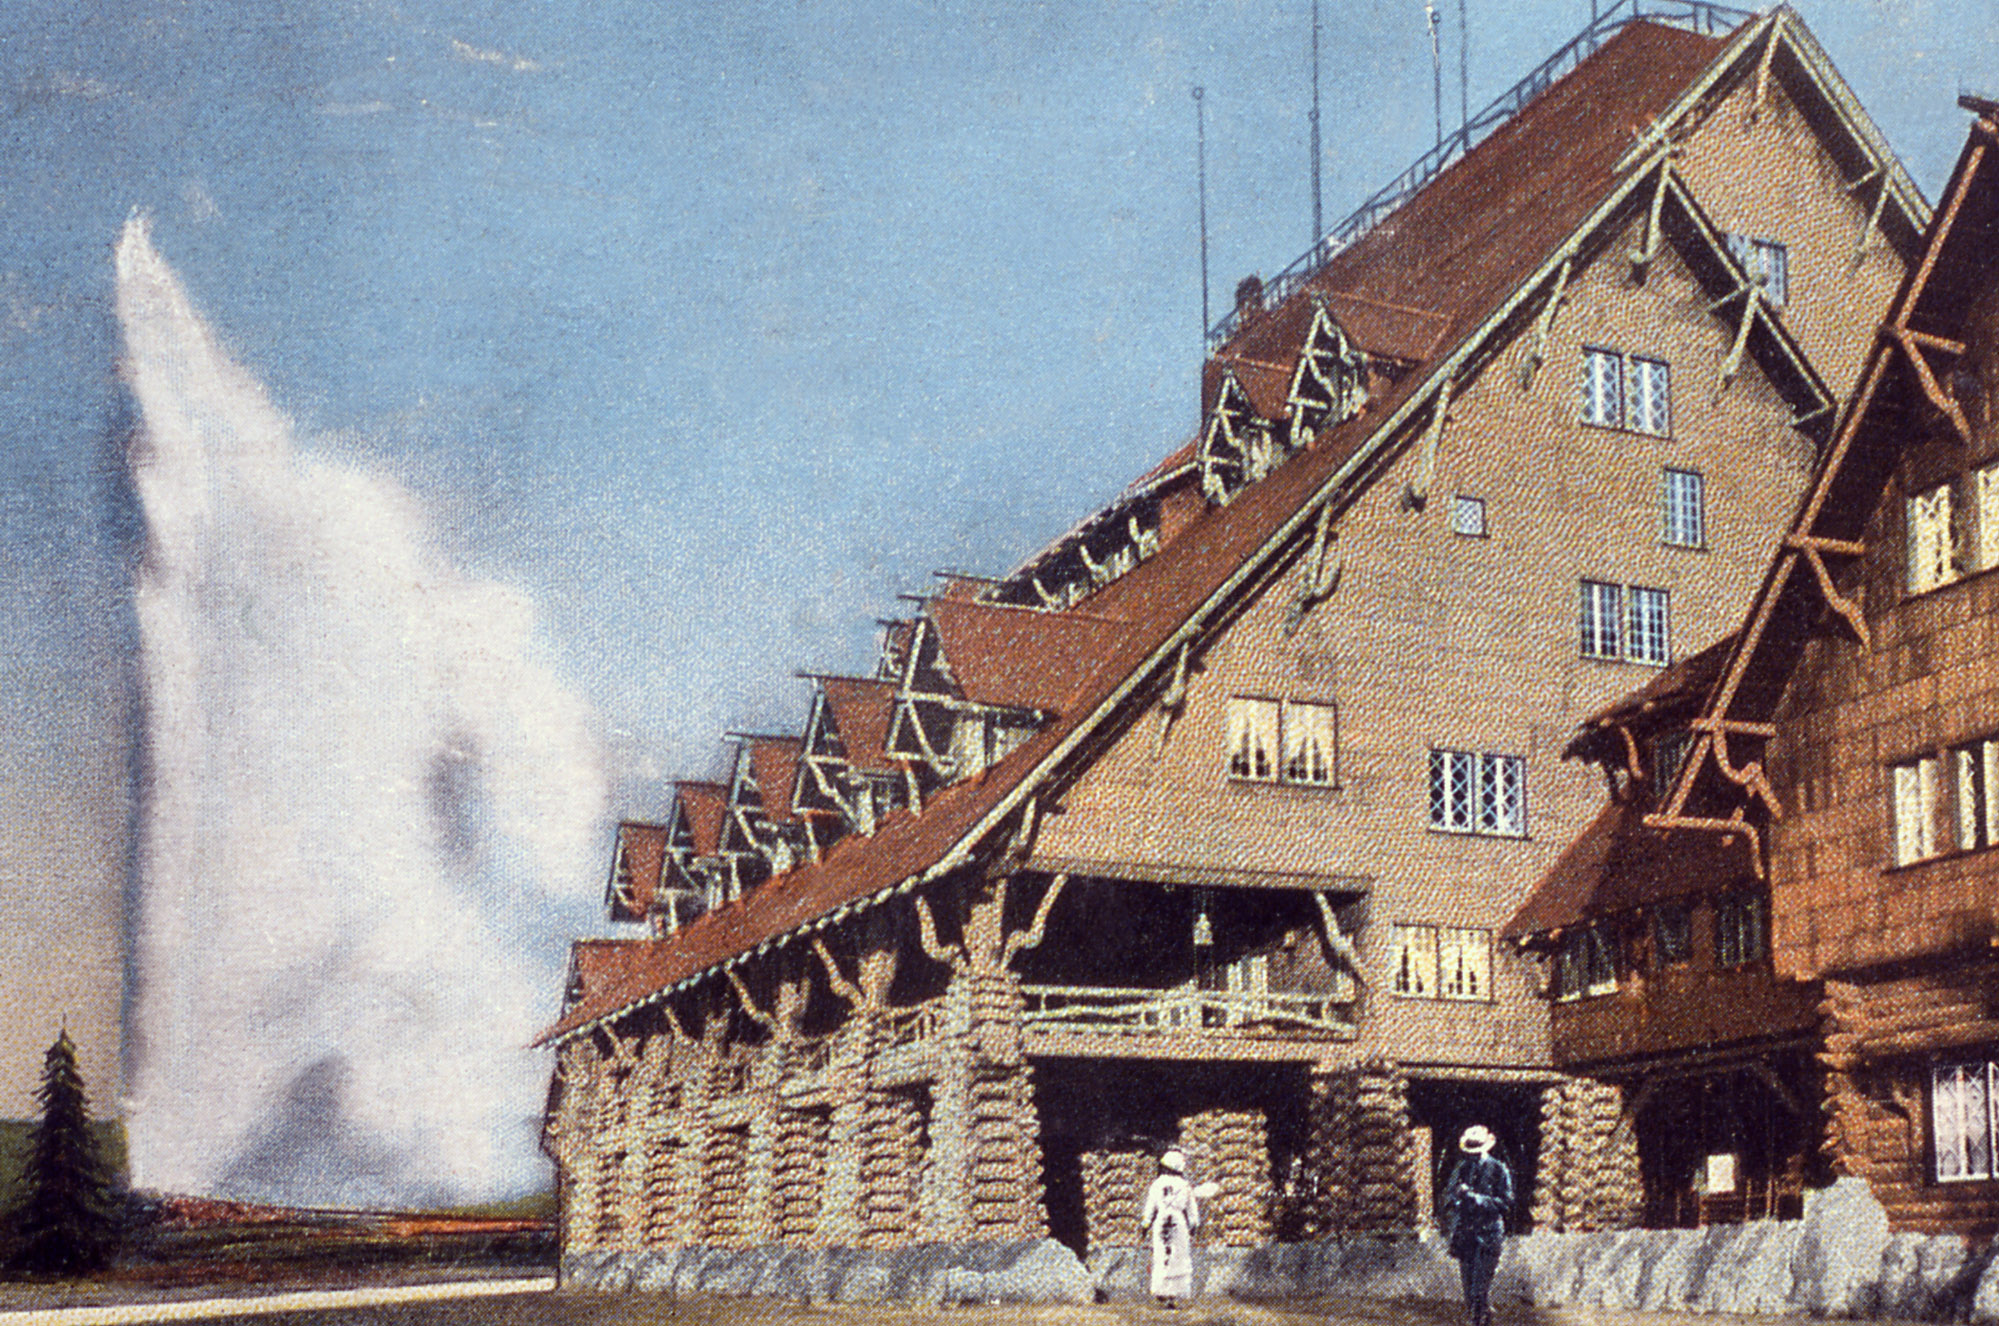 An old postcard of Old Faithful Inn at Yellowstone National Park.